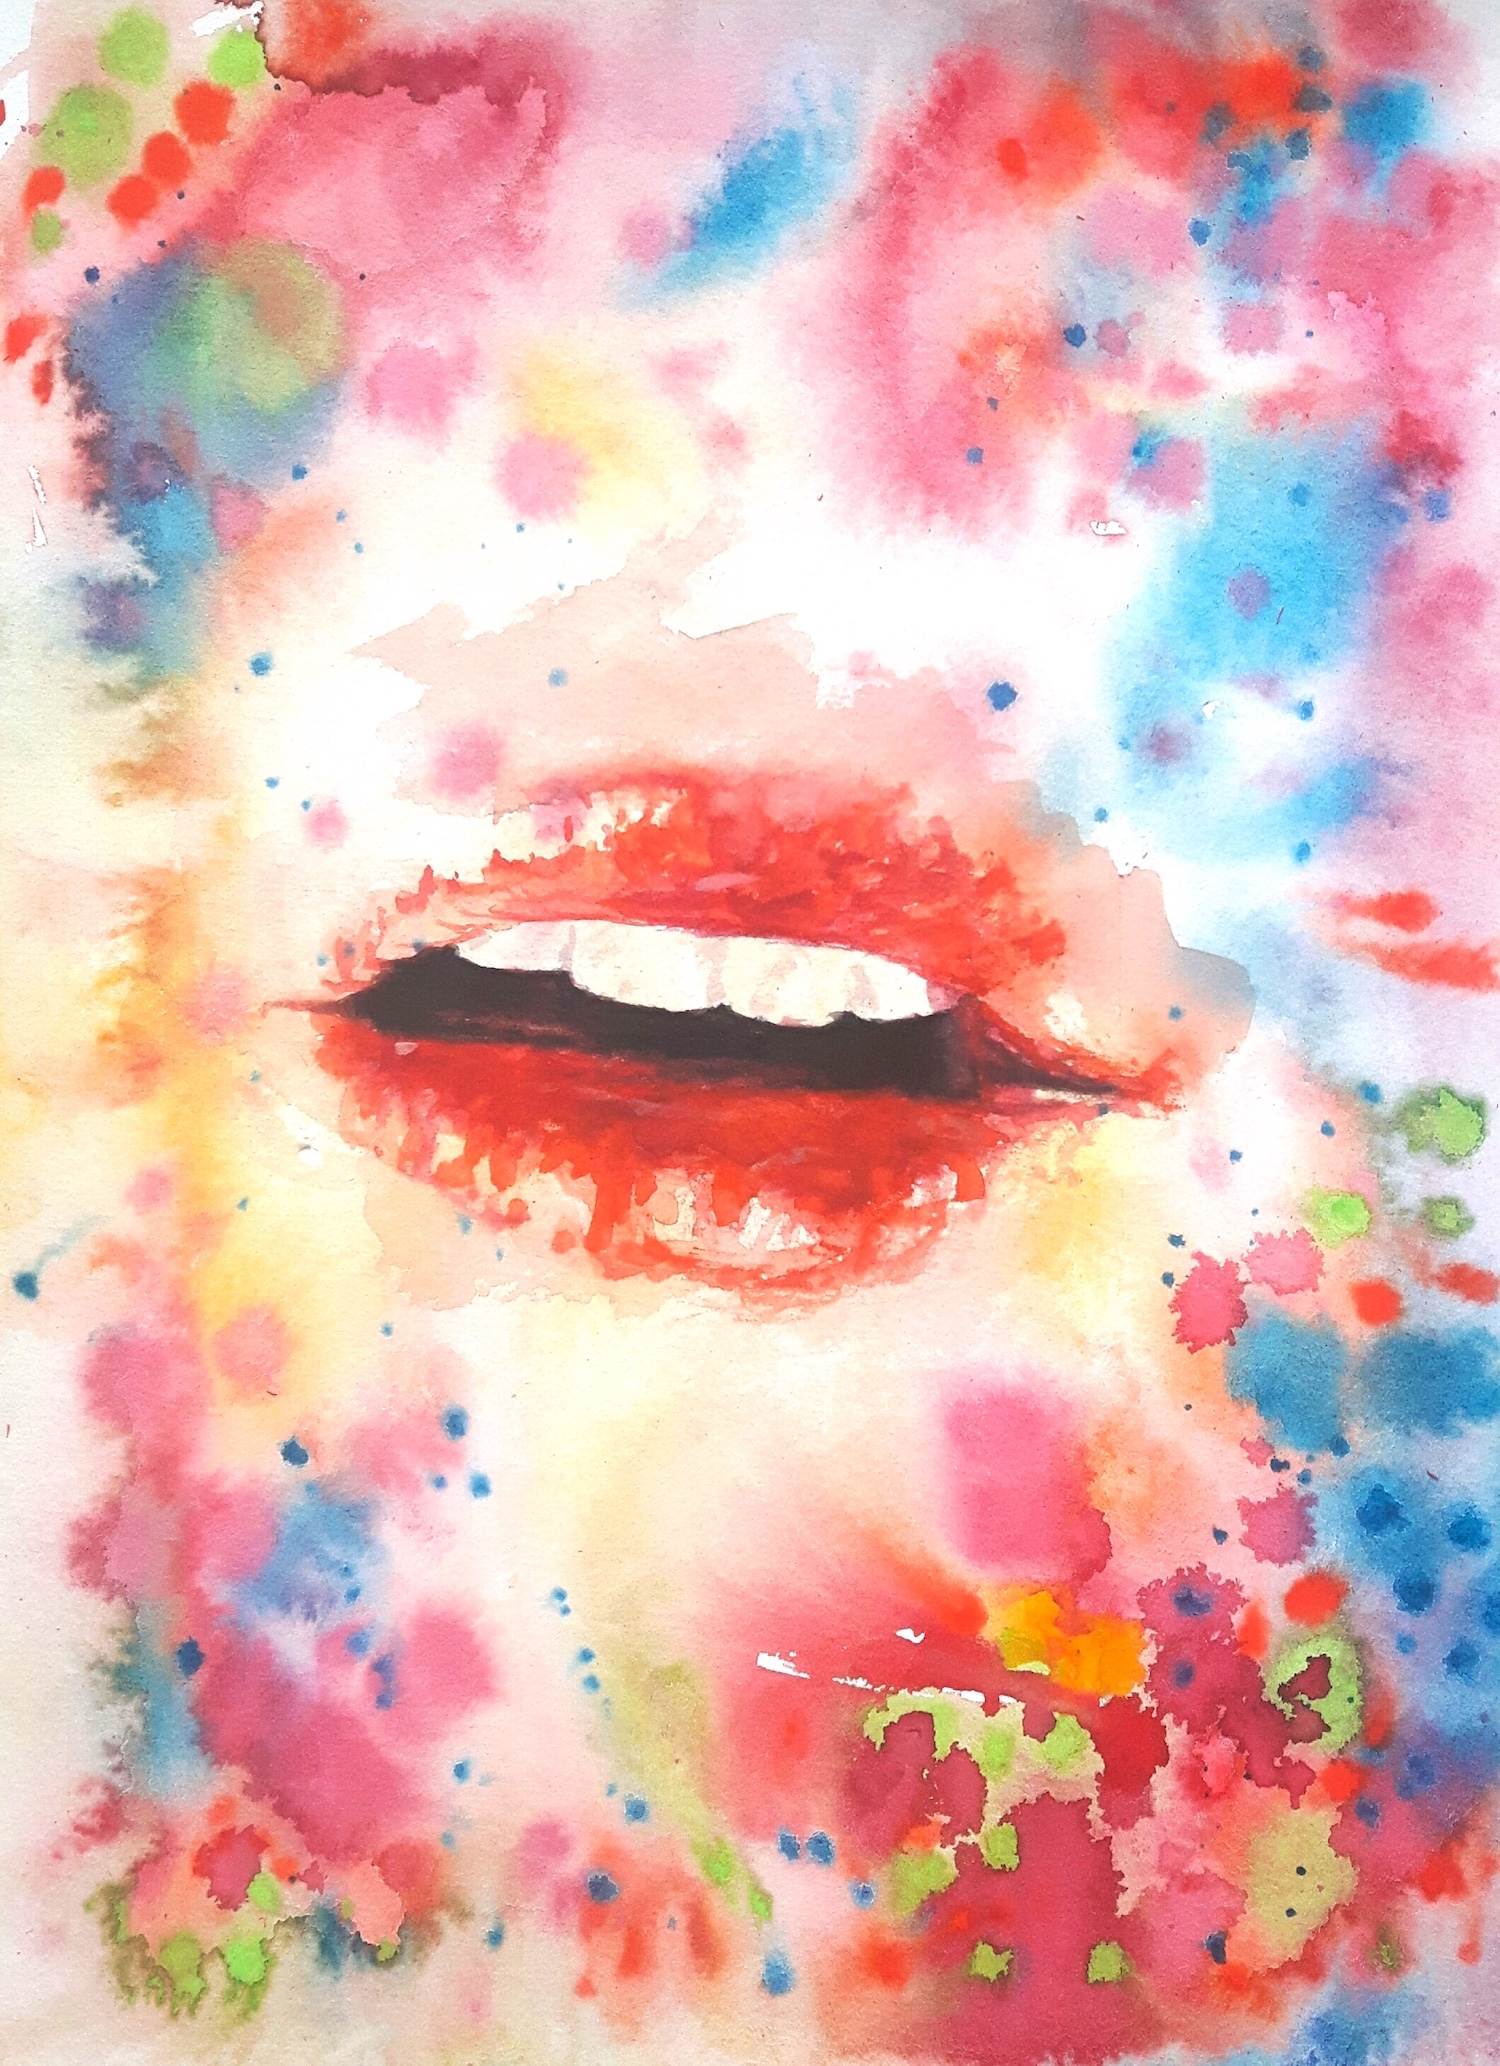 painting art space watercolor geometry geometrie aquarell cosmos cosmic malerei universe universum formen colorful silence aesthetic  kunst mouth